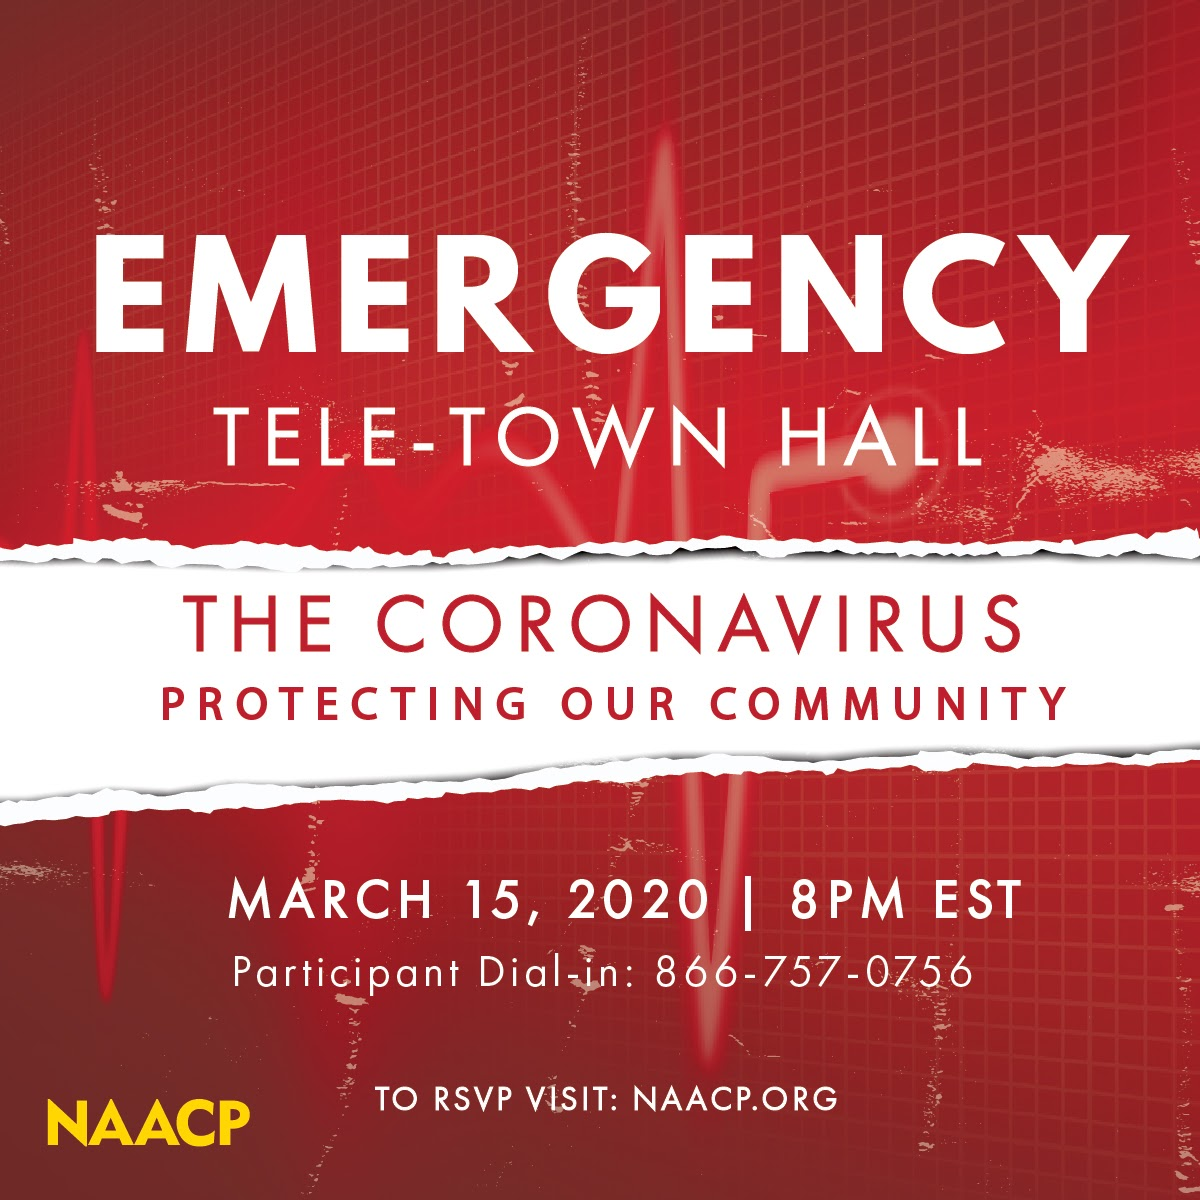 Emergency Tele-Town Hall. The Coronavirus. Protecting Our Community. March 15, 2020 | 8pm EST. Participant Dial-in: 866-757-0756.